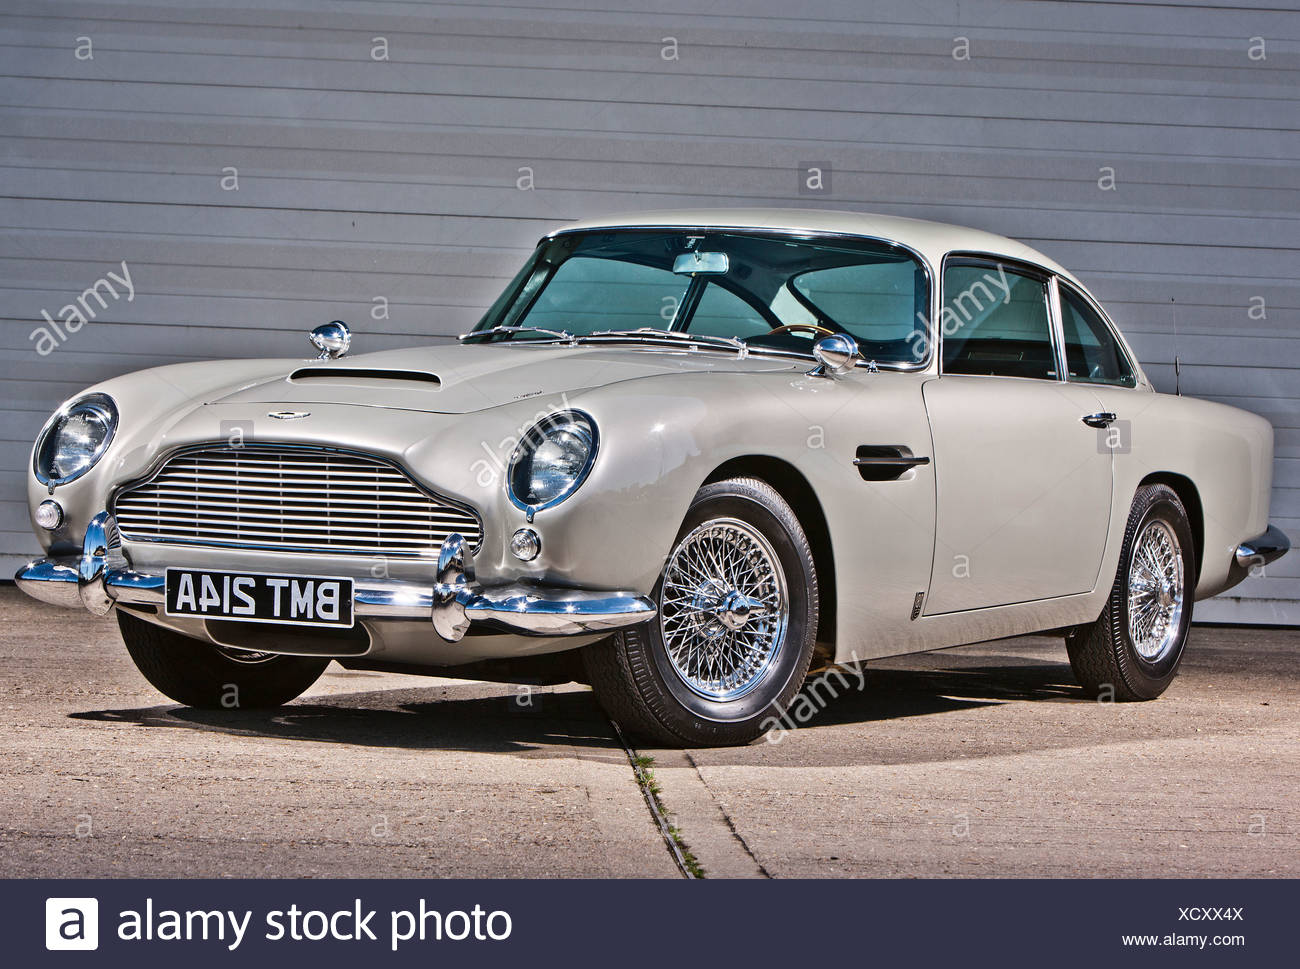 Aston Martin DB5, James Bond Oldtimer Stockbild